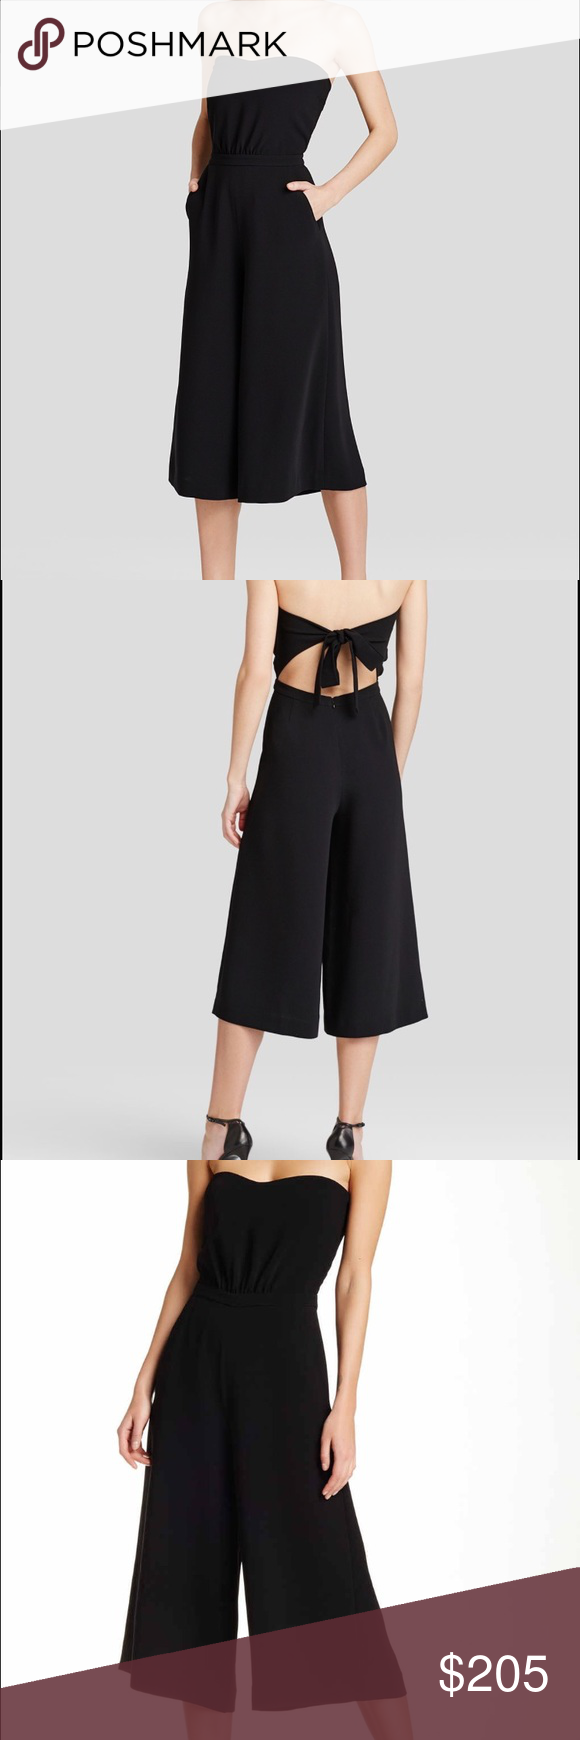 SALE  Elizabeth and James jumpsuit Sold out at NEIMAN MARCUS. fabulous back tie jumpsuit. The perfect Saturday night date look!  NEW WITH TAGS Elizabeth and James Other